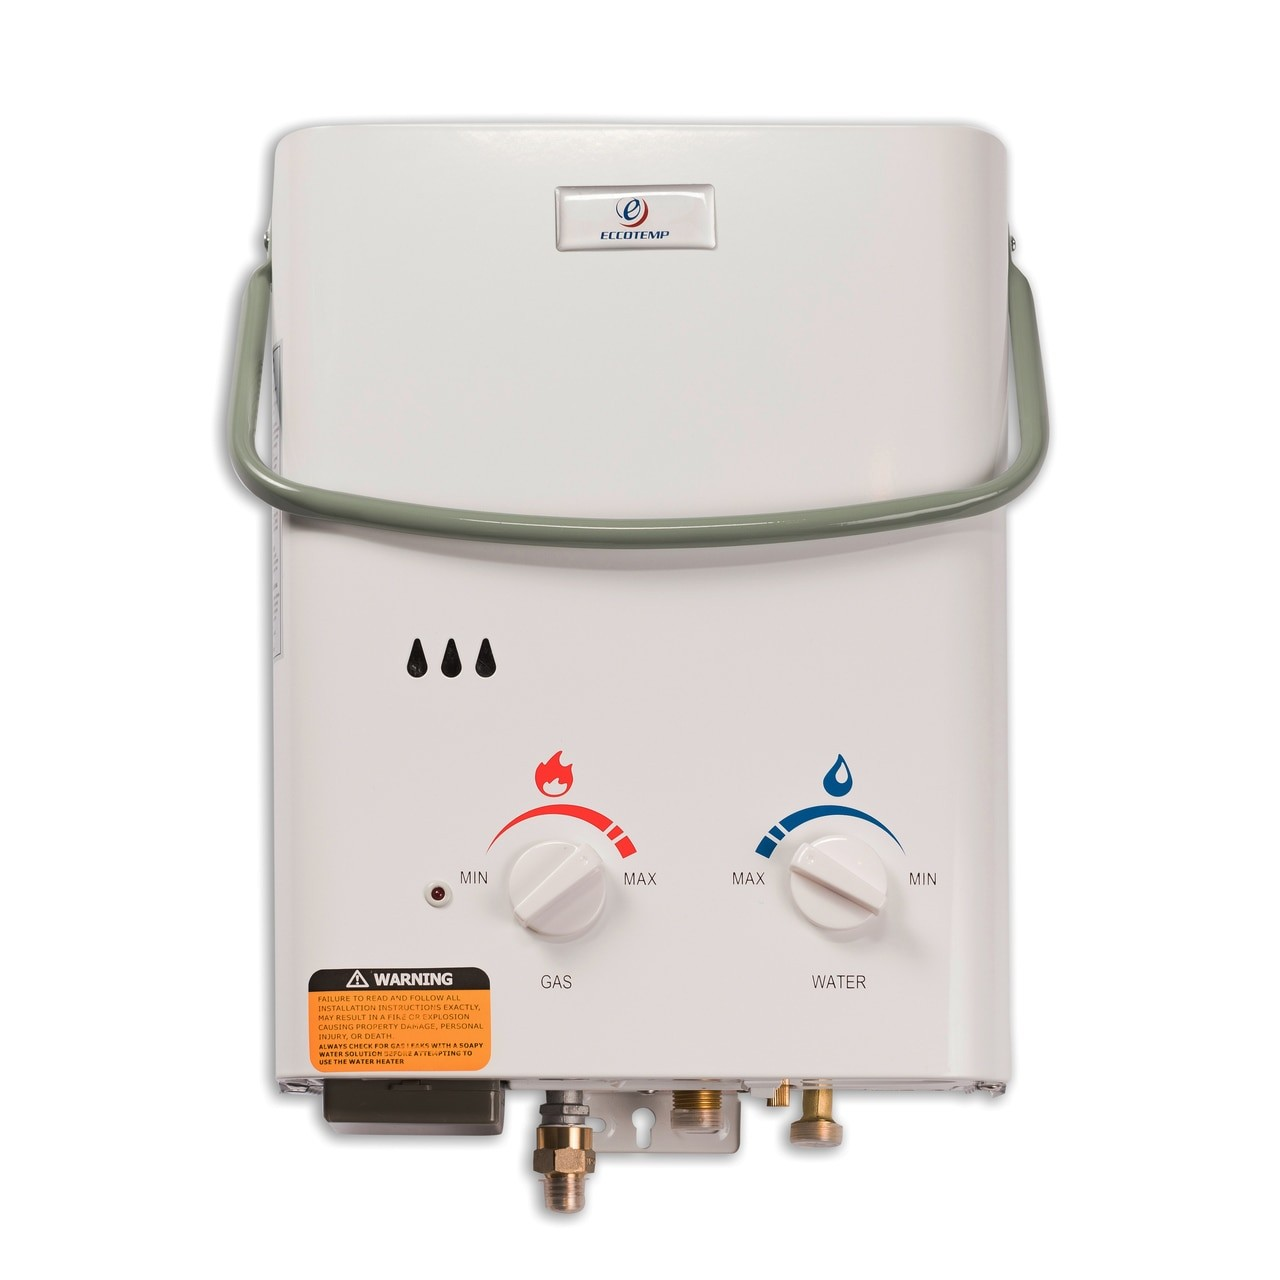 Eccotemp L5 Portable Tankless Water Heater Front View to enlarge